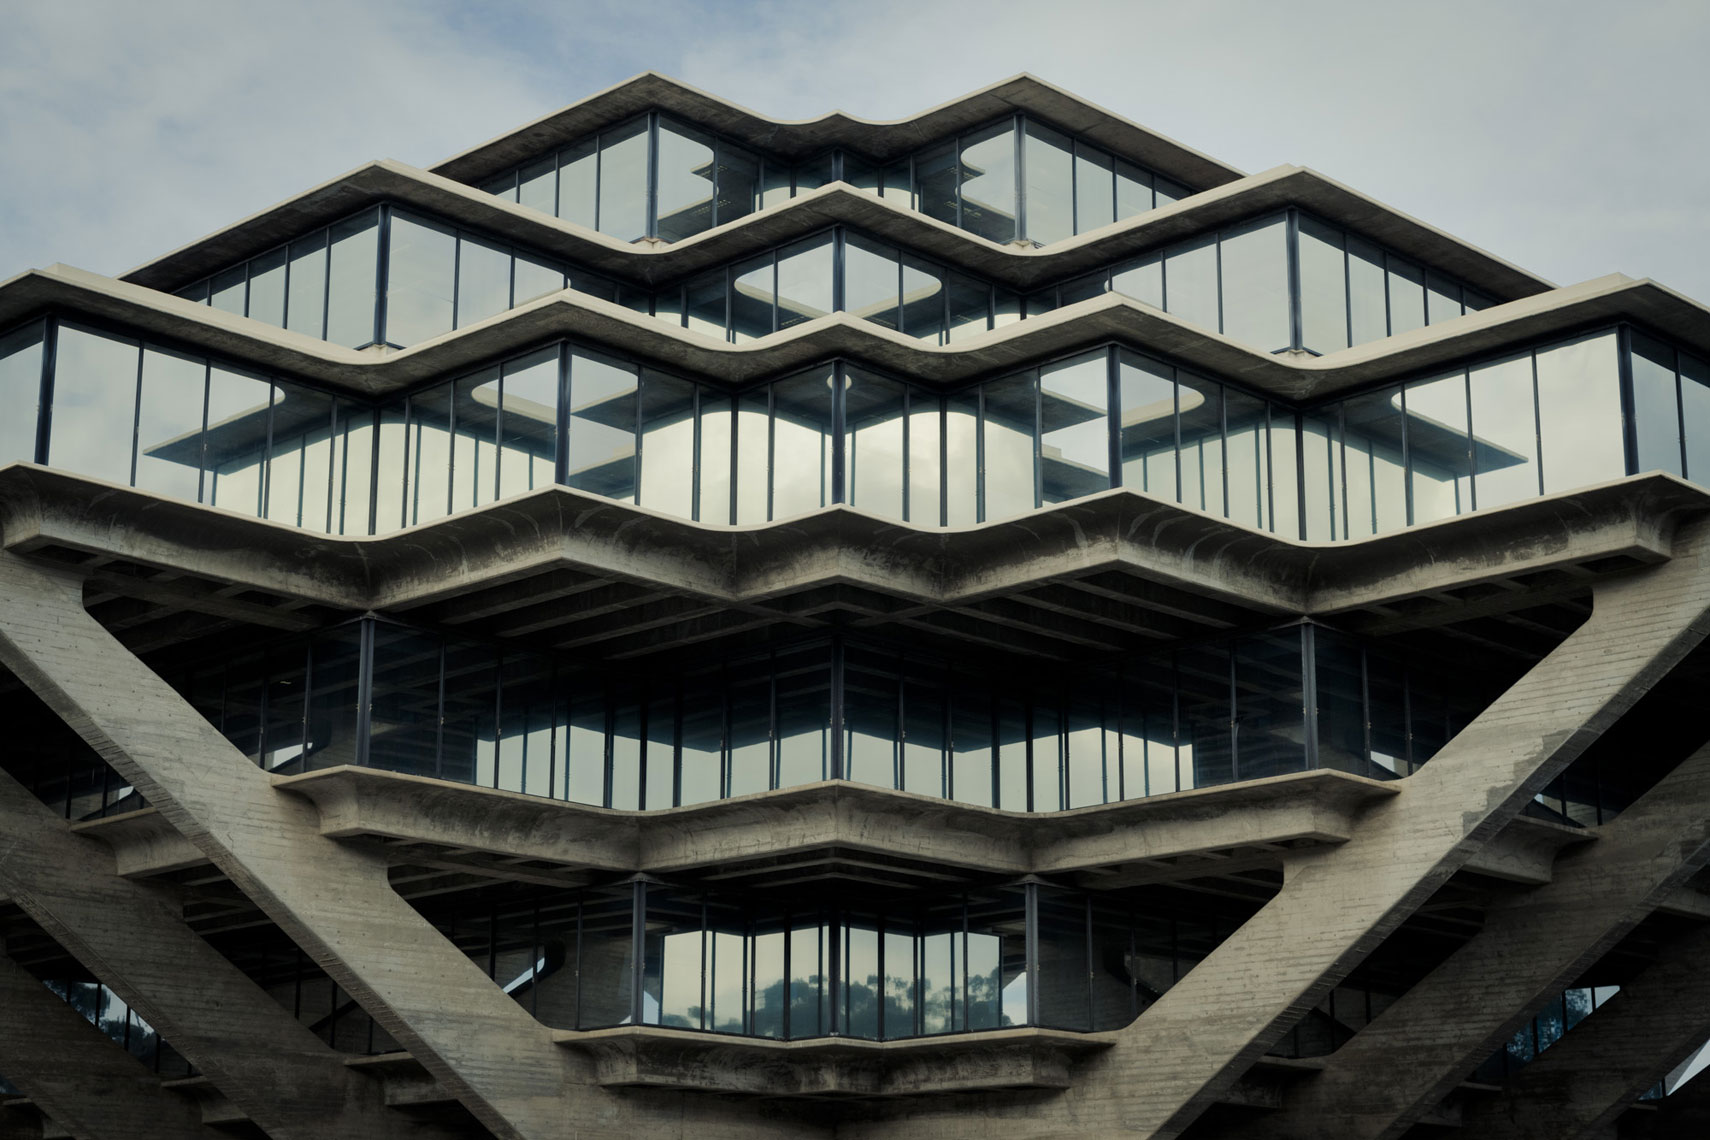 jeff-green-geisel-library-ucsd-la-jolla-exterior-architecture-symmetry